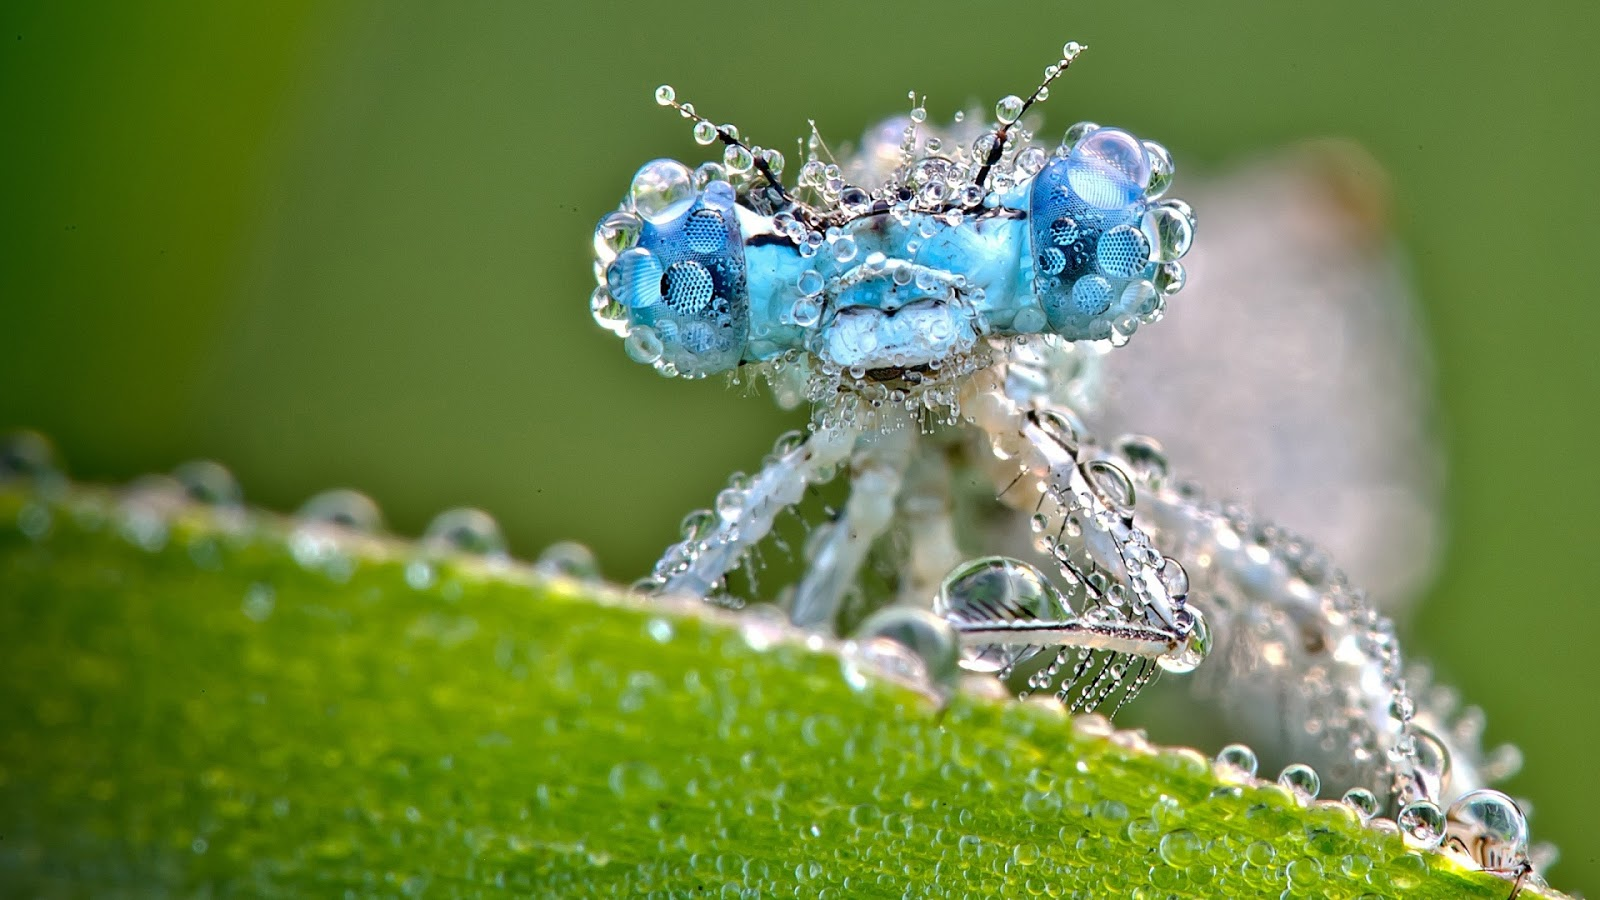 Shine HD Wallpapers Dragonfly Wallpapers HD 1600x900